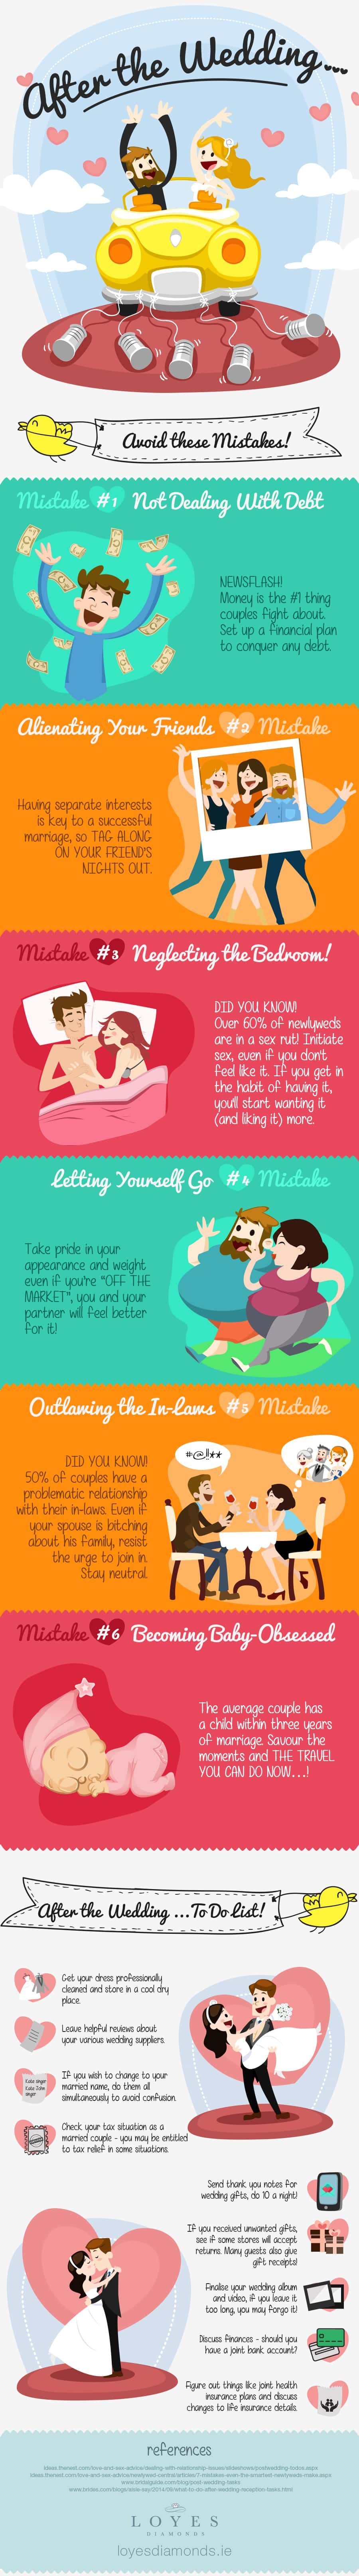 Mistakes to avoid after the wedding 1